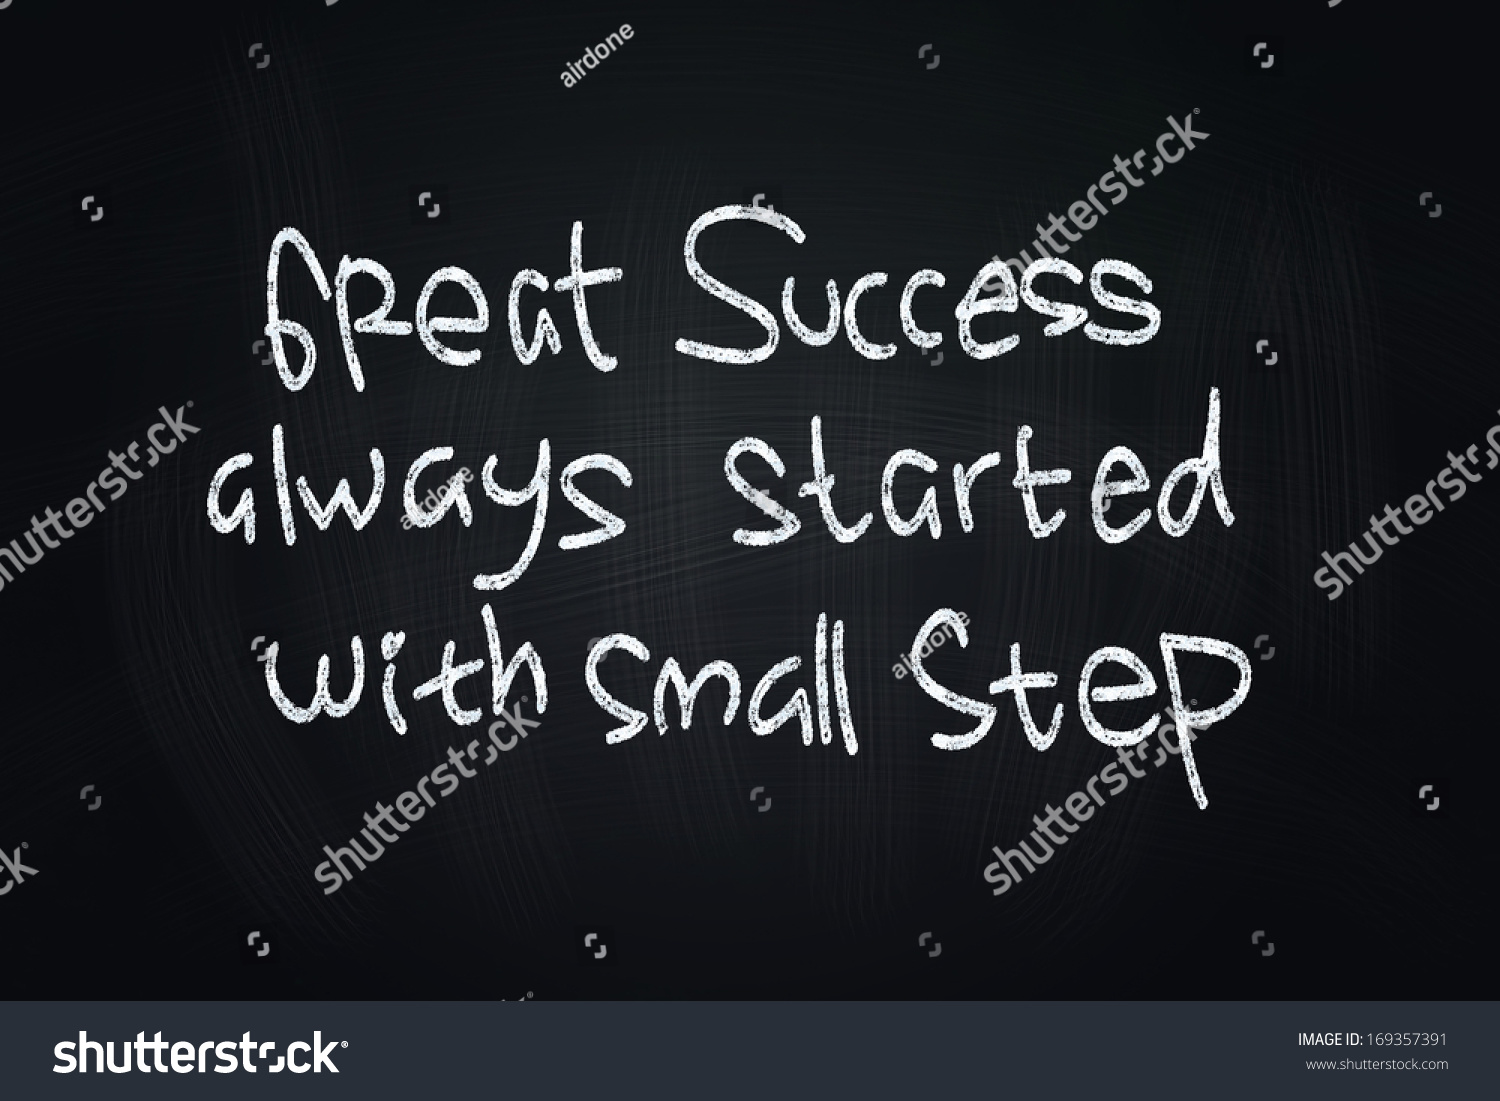 Great Quotes About Success Great Success Quotes Written Chalk On Stock Illustration 169357391